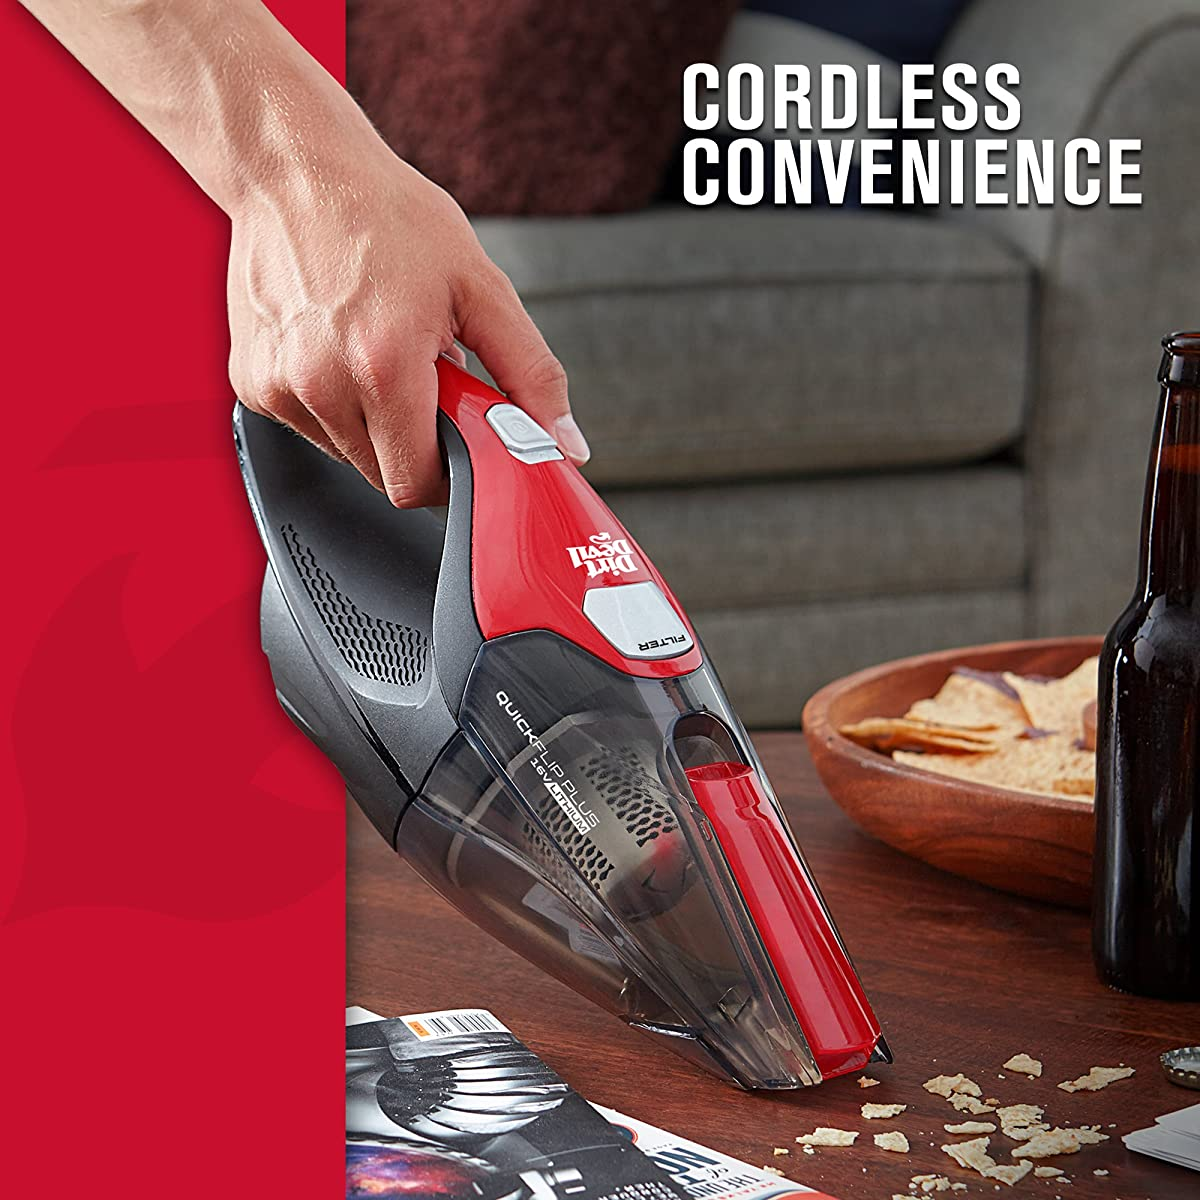 Dirt Devil Quick Flip Plus Cordless 16 Volt Lithium Ion Bagless Handheld Vacuum BD30025B